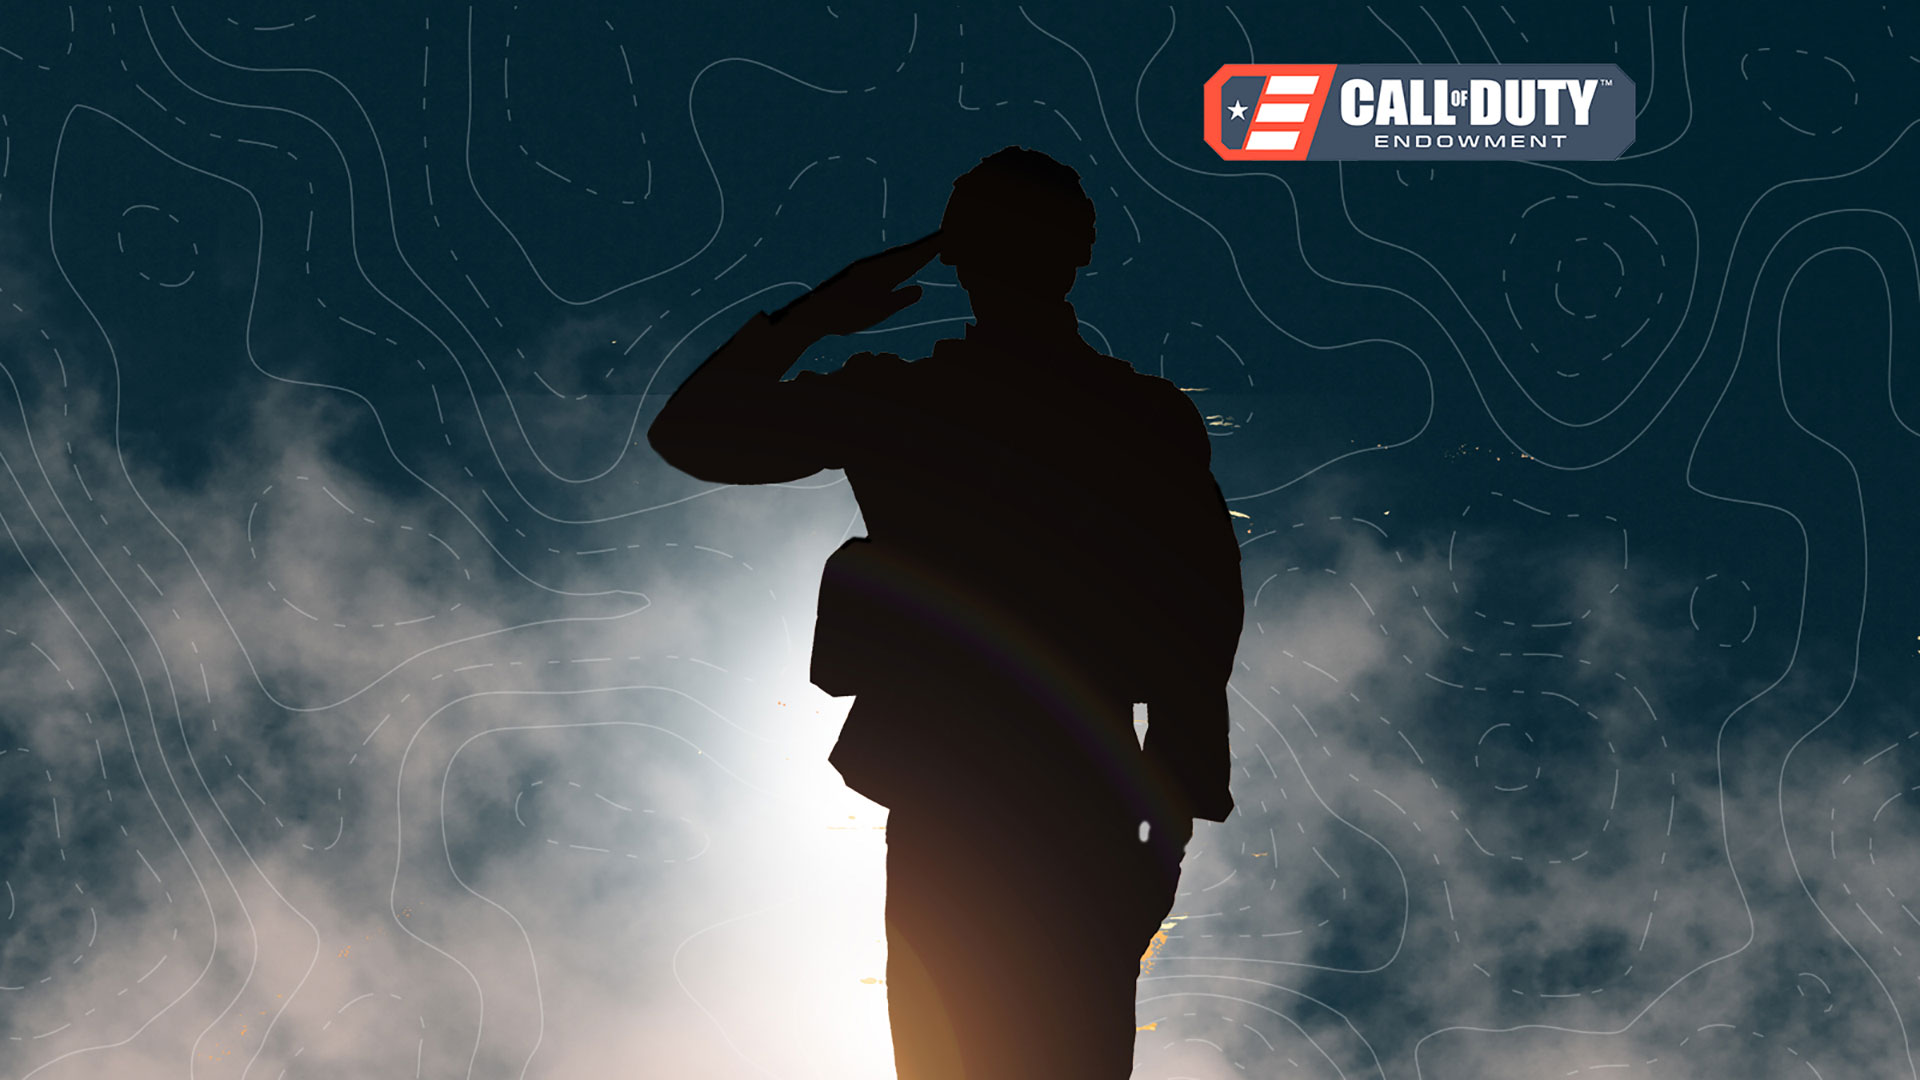 The Call of Duty Endowment has placed 66,000 veterans in high-quality jobs - Image 1